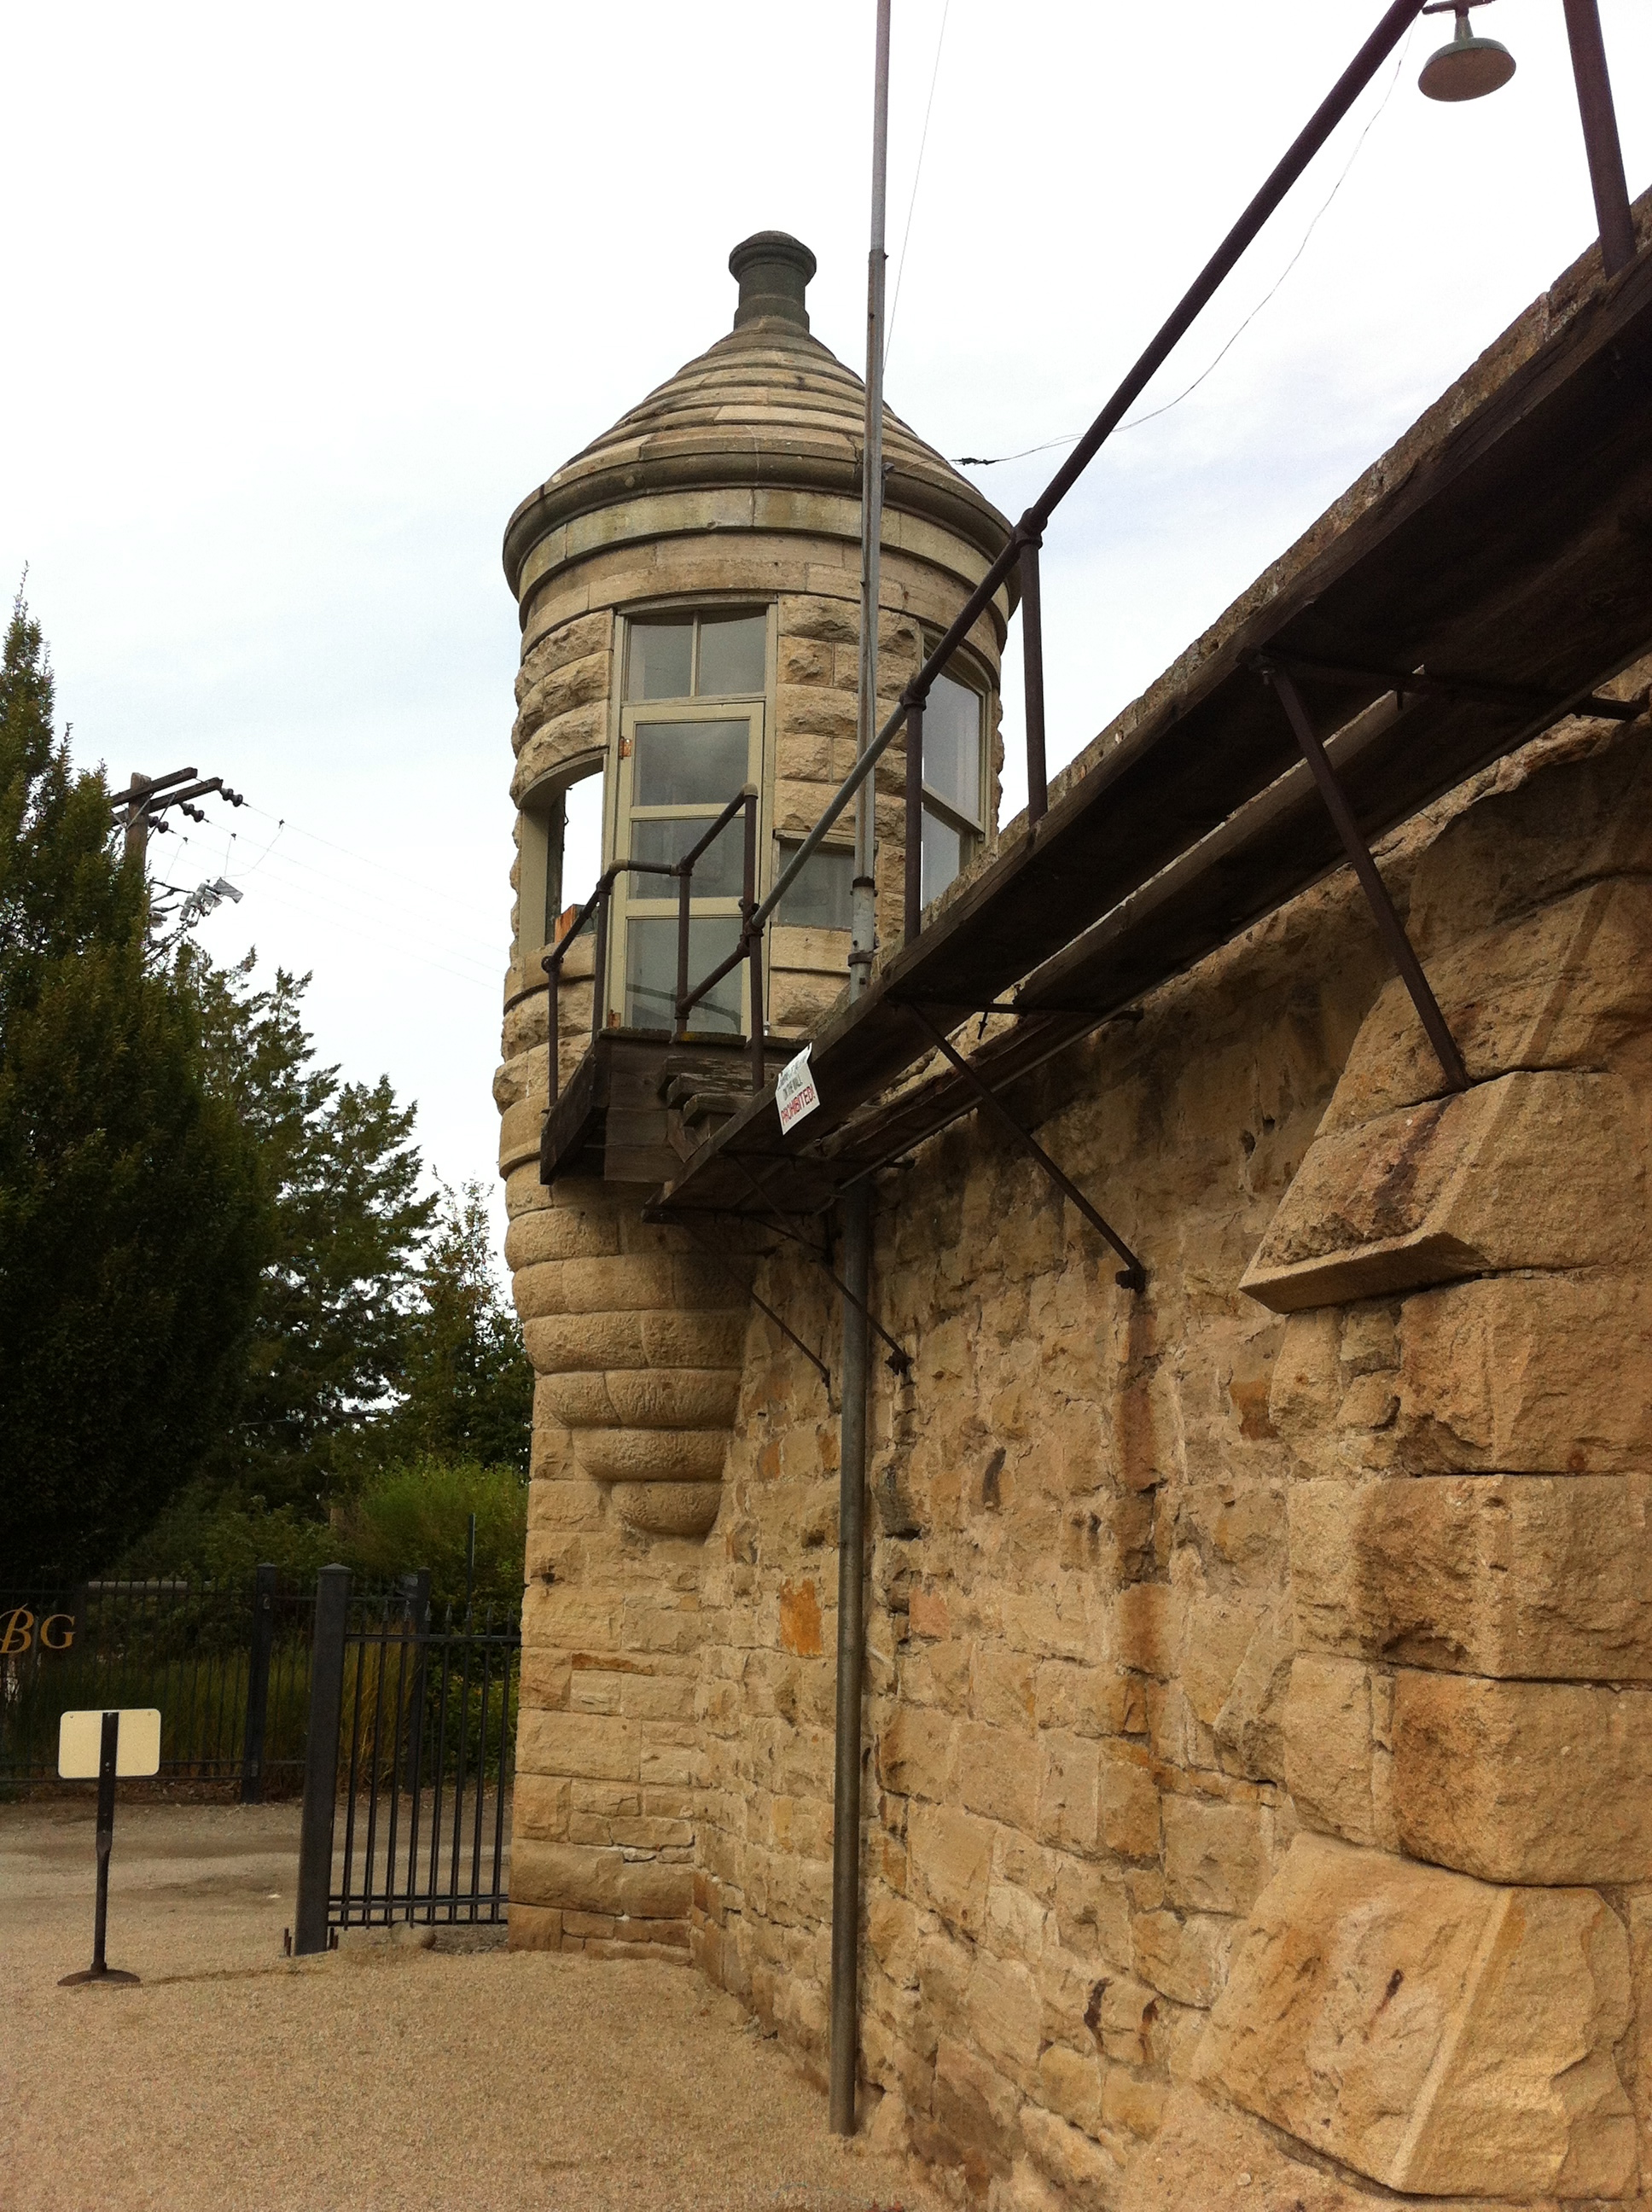 The sand stone wall,guard house and walkway.